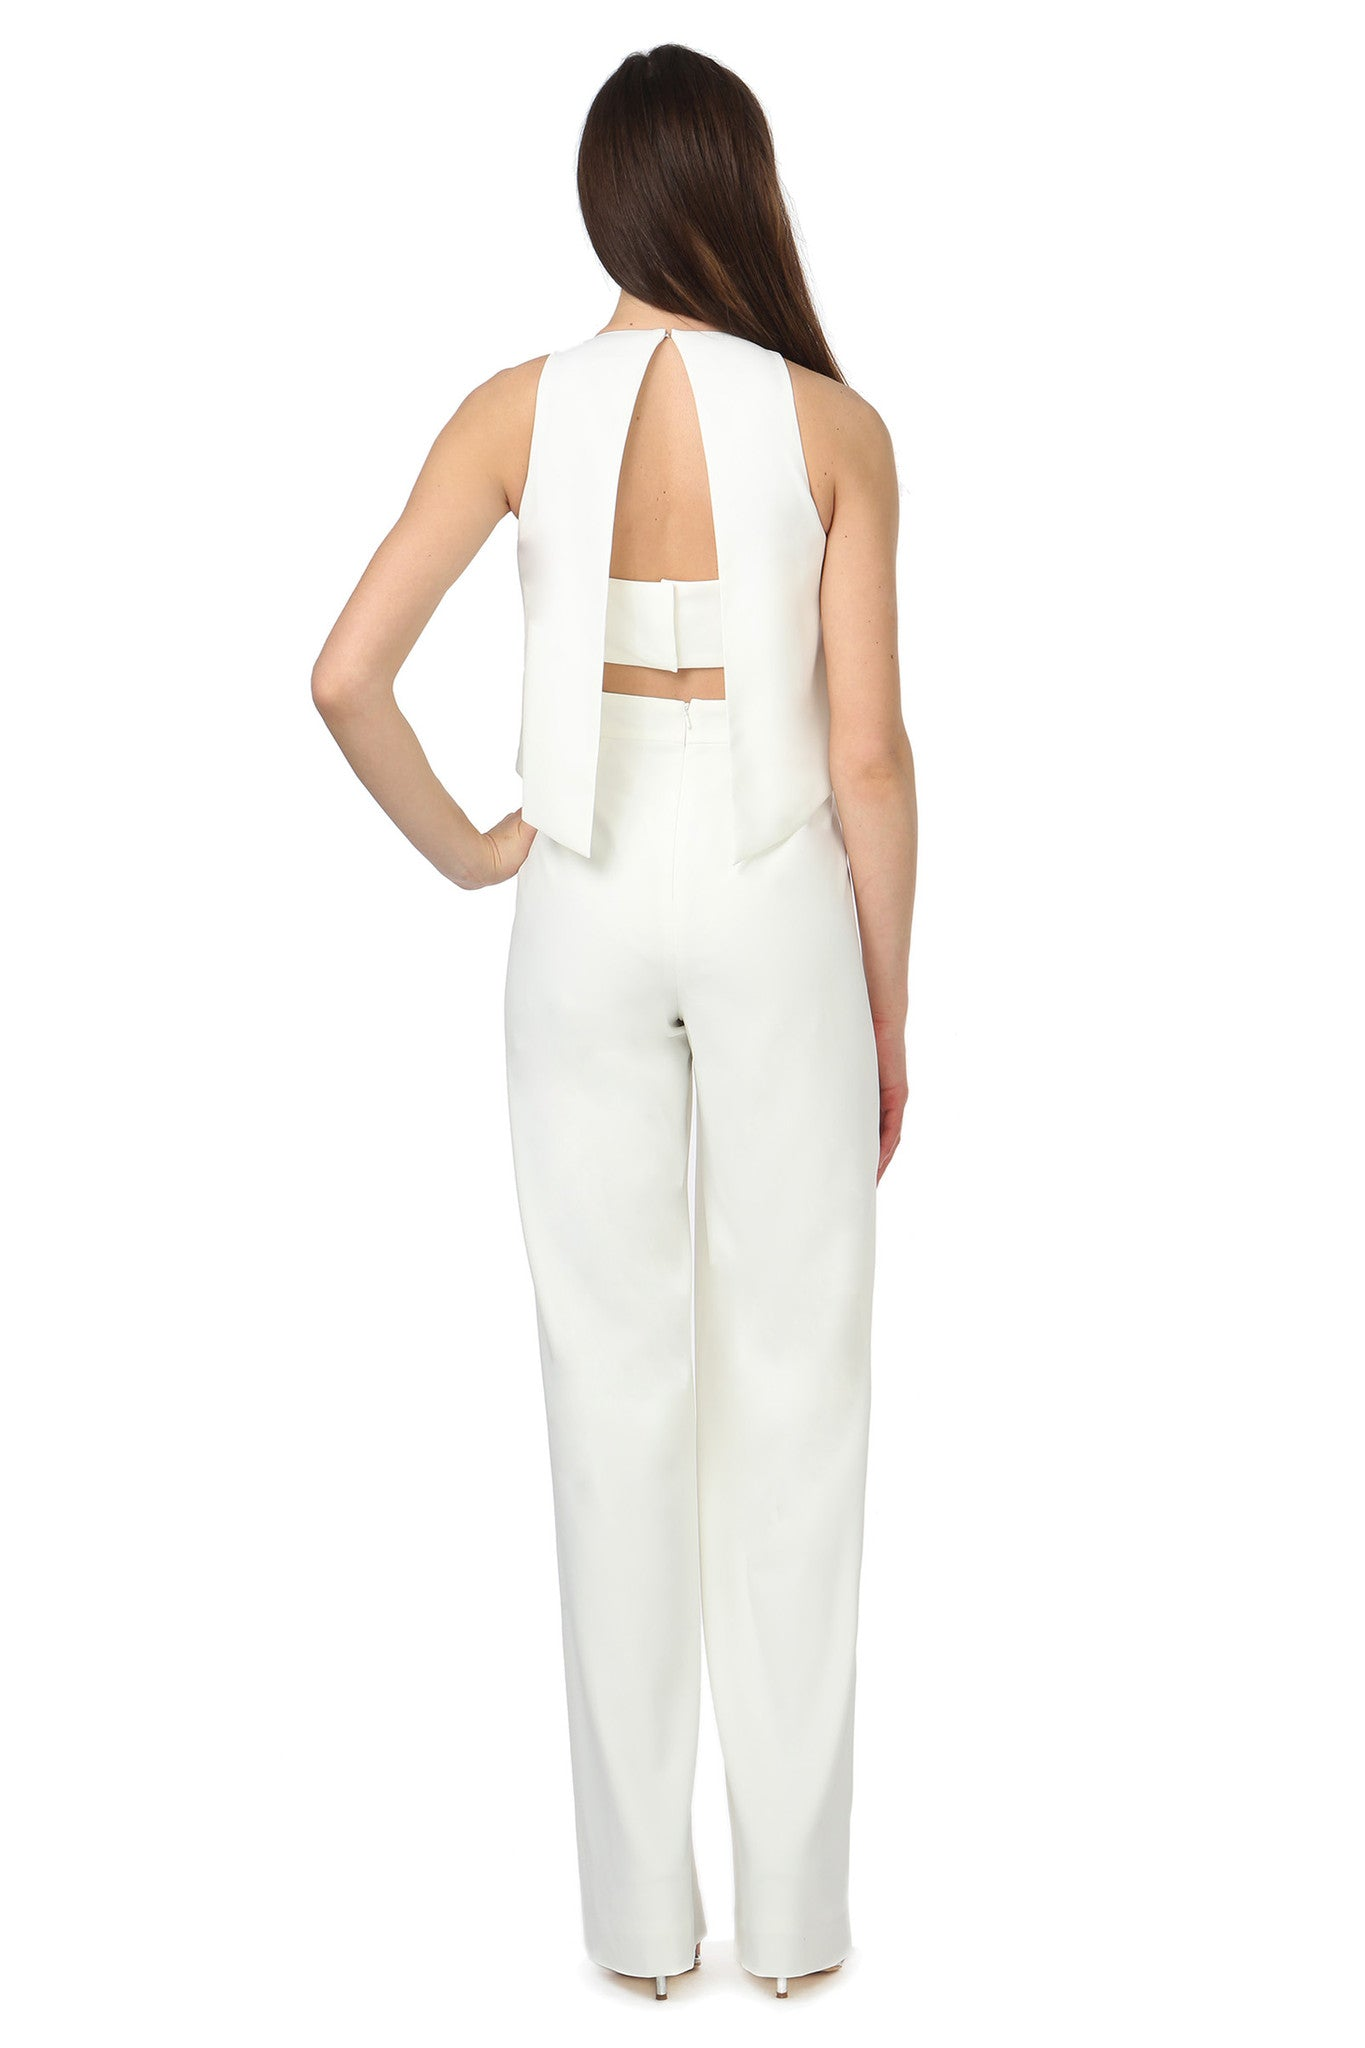 Jay Godfrey Classic Ivory Jumpsuit - Back View